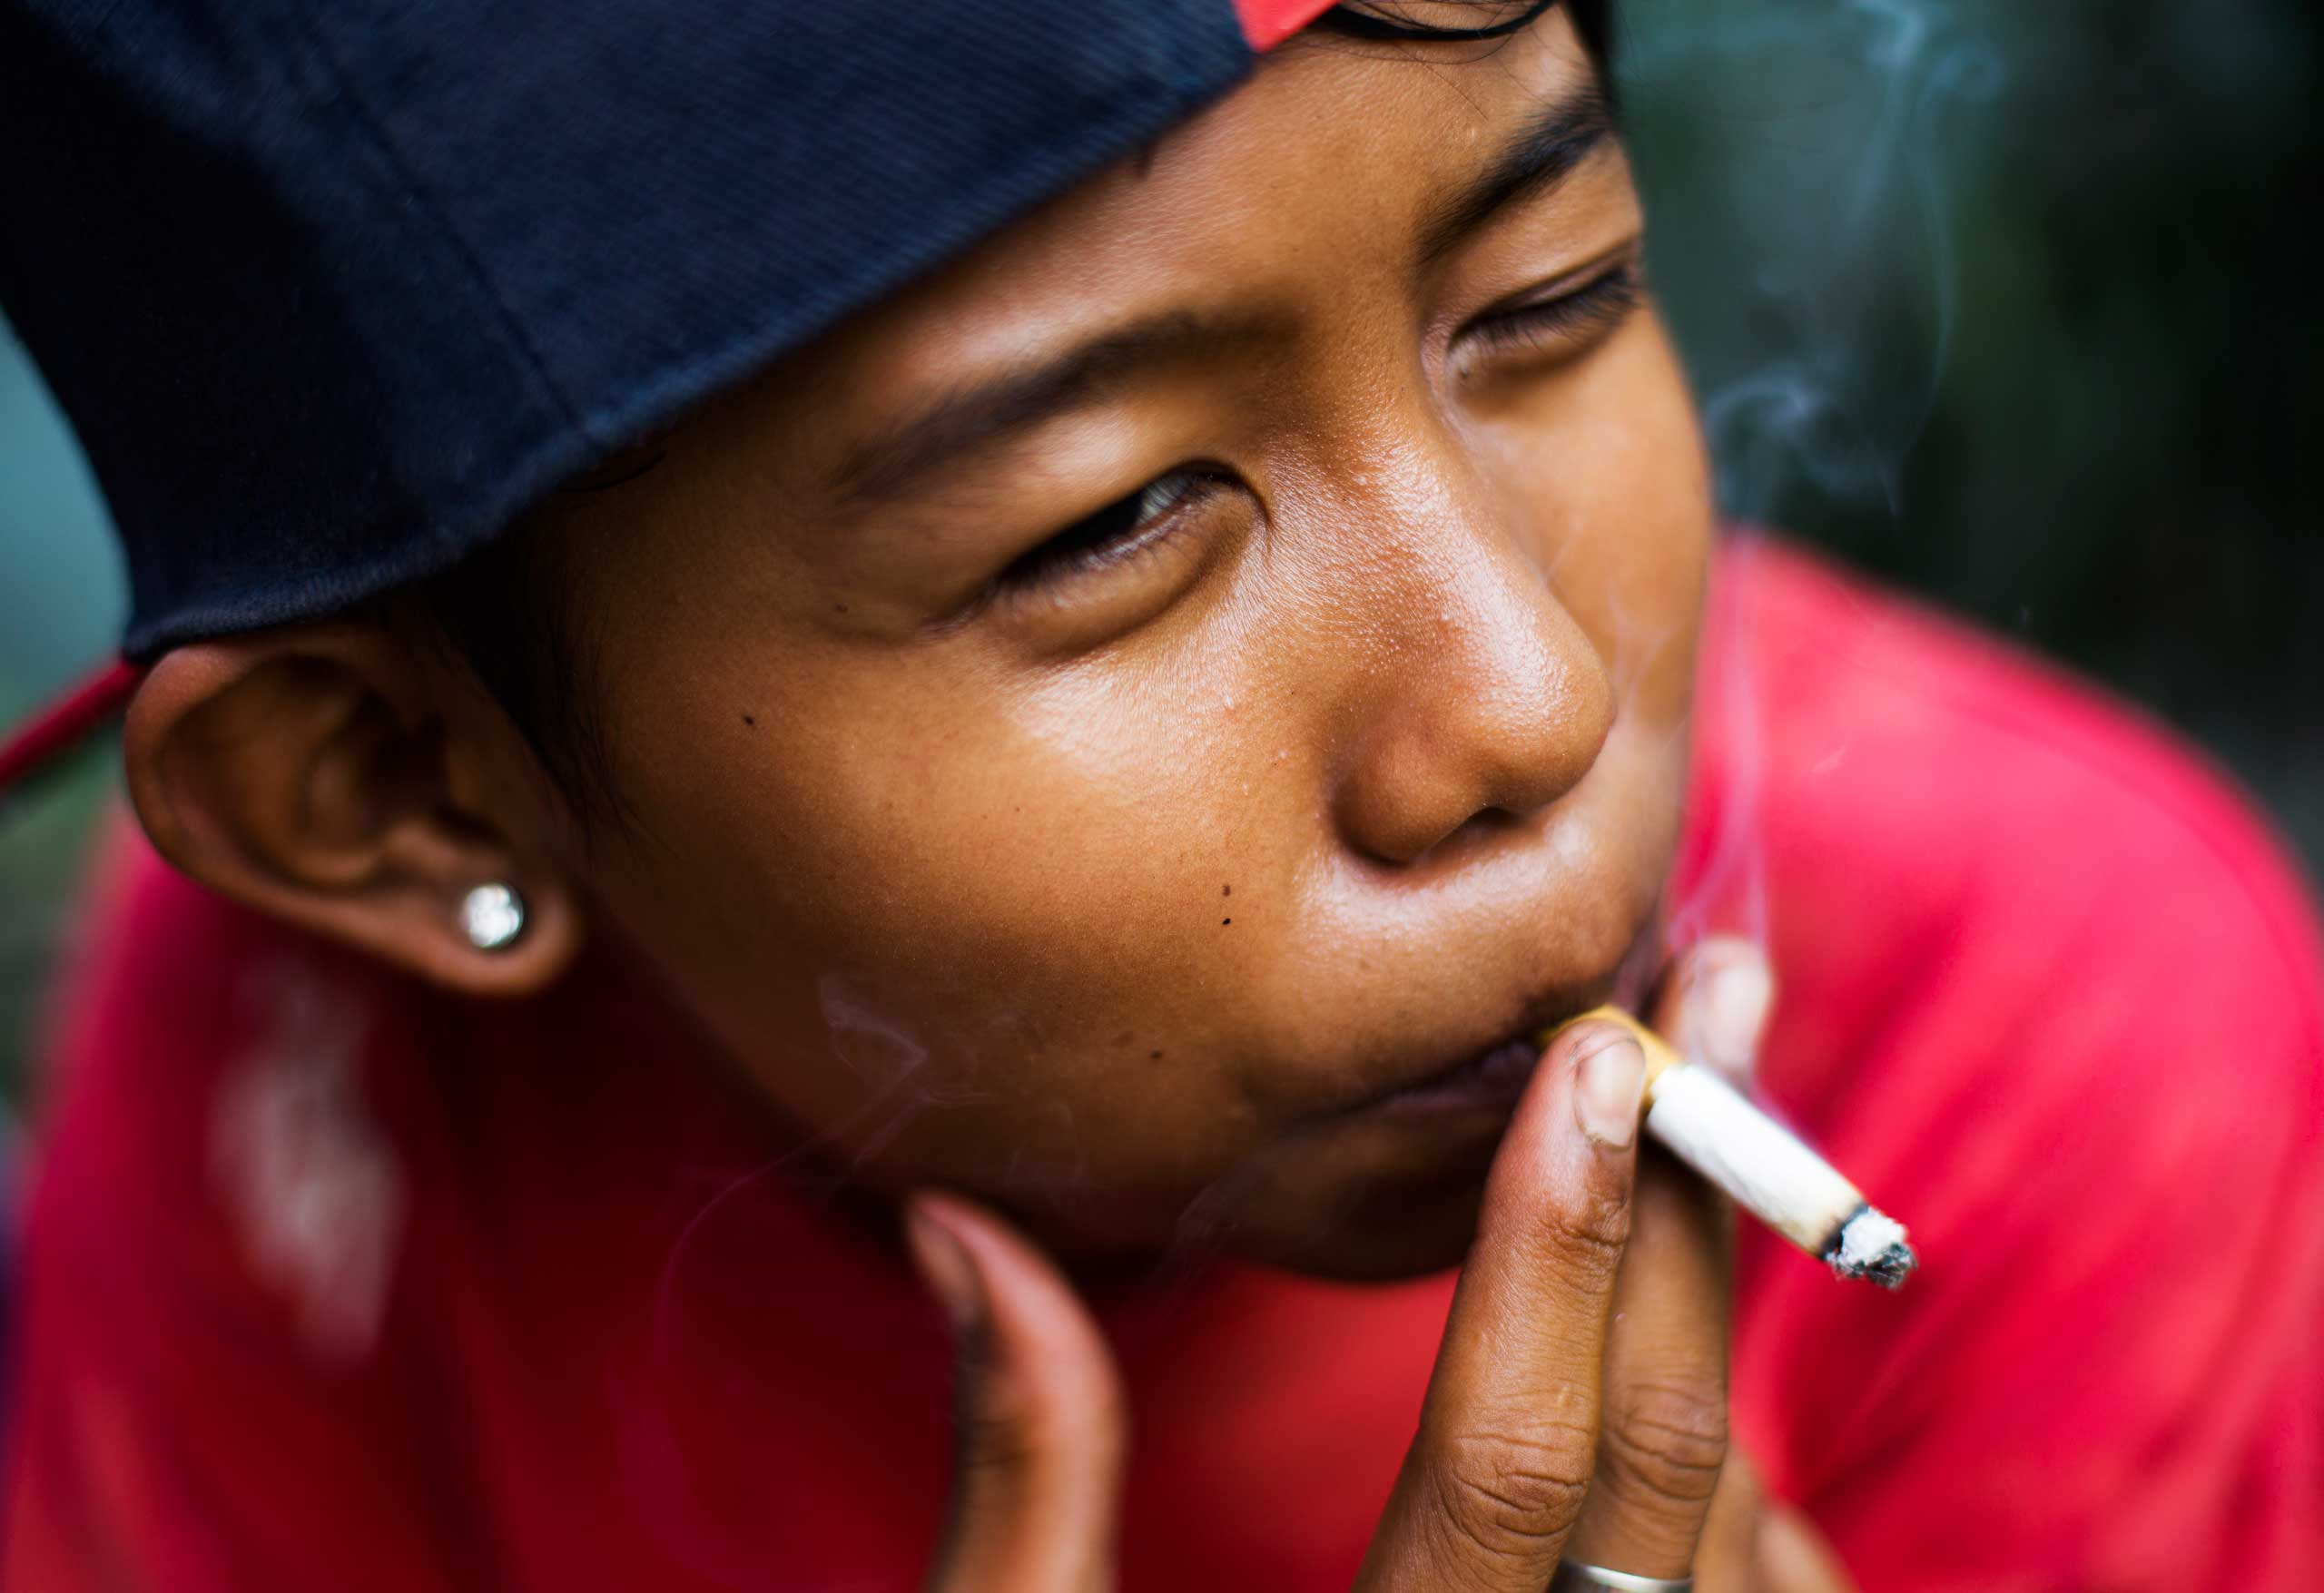 Ompong, which means  toothless  in Bahasa, poses for a photograph as he has a cigarette in South Jakarta, Indonesia on February 14, 2014.